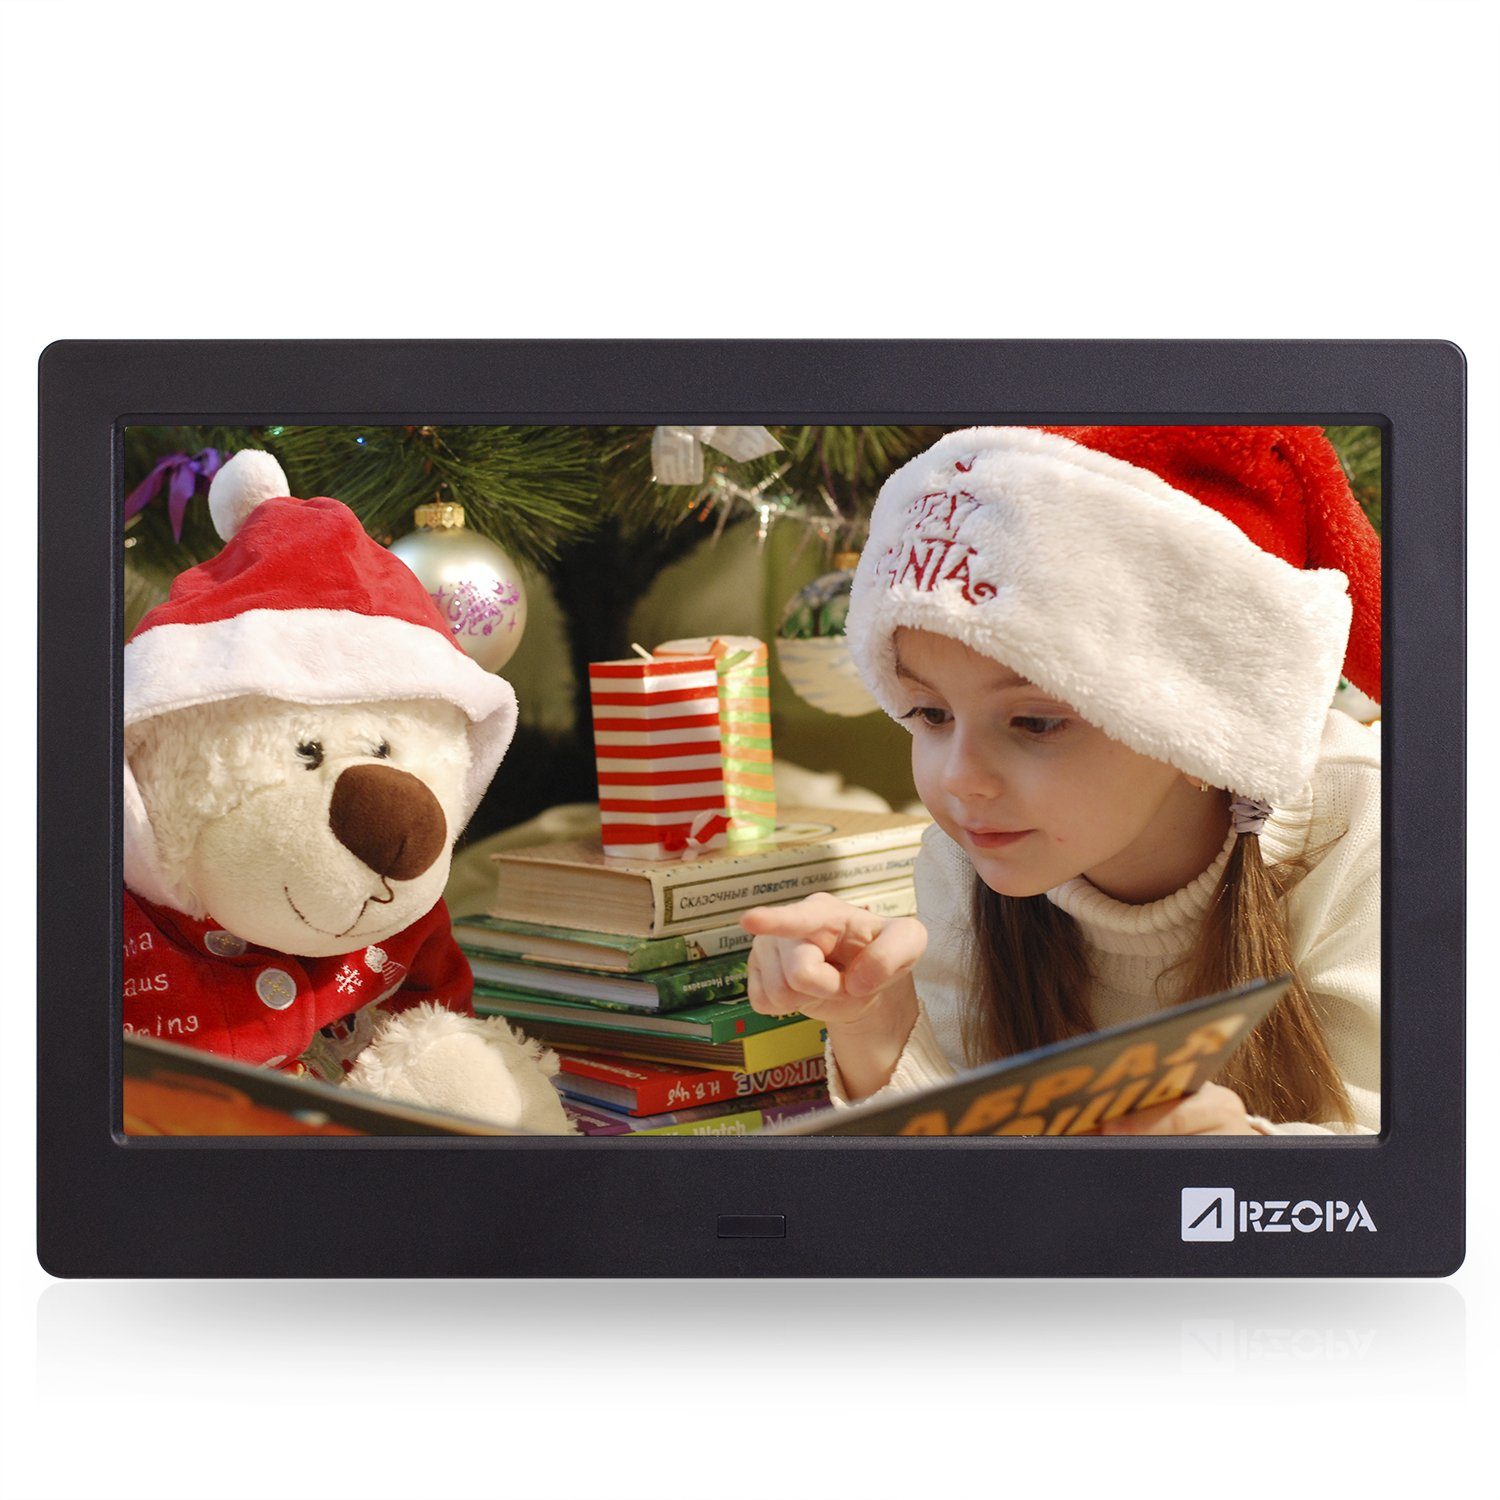 Advanced Digital Picture Photo Frame - HD 1024x600(4:3) IPS Widescreen Eletronic Picture Frame Advertising Player with Calendar/Clock/Remote Control Black 10-inch by Arzopa